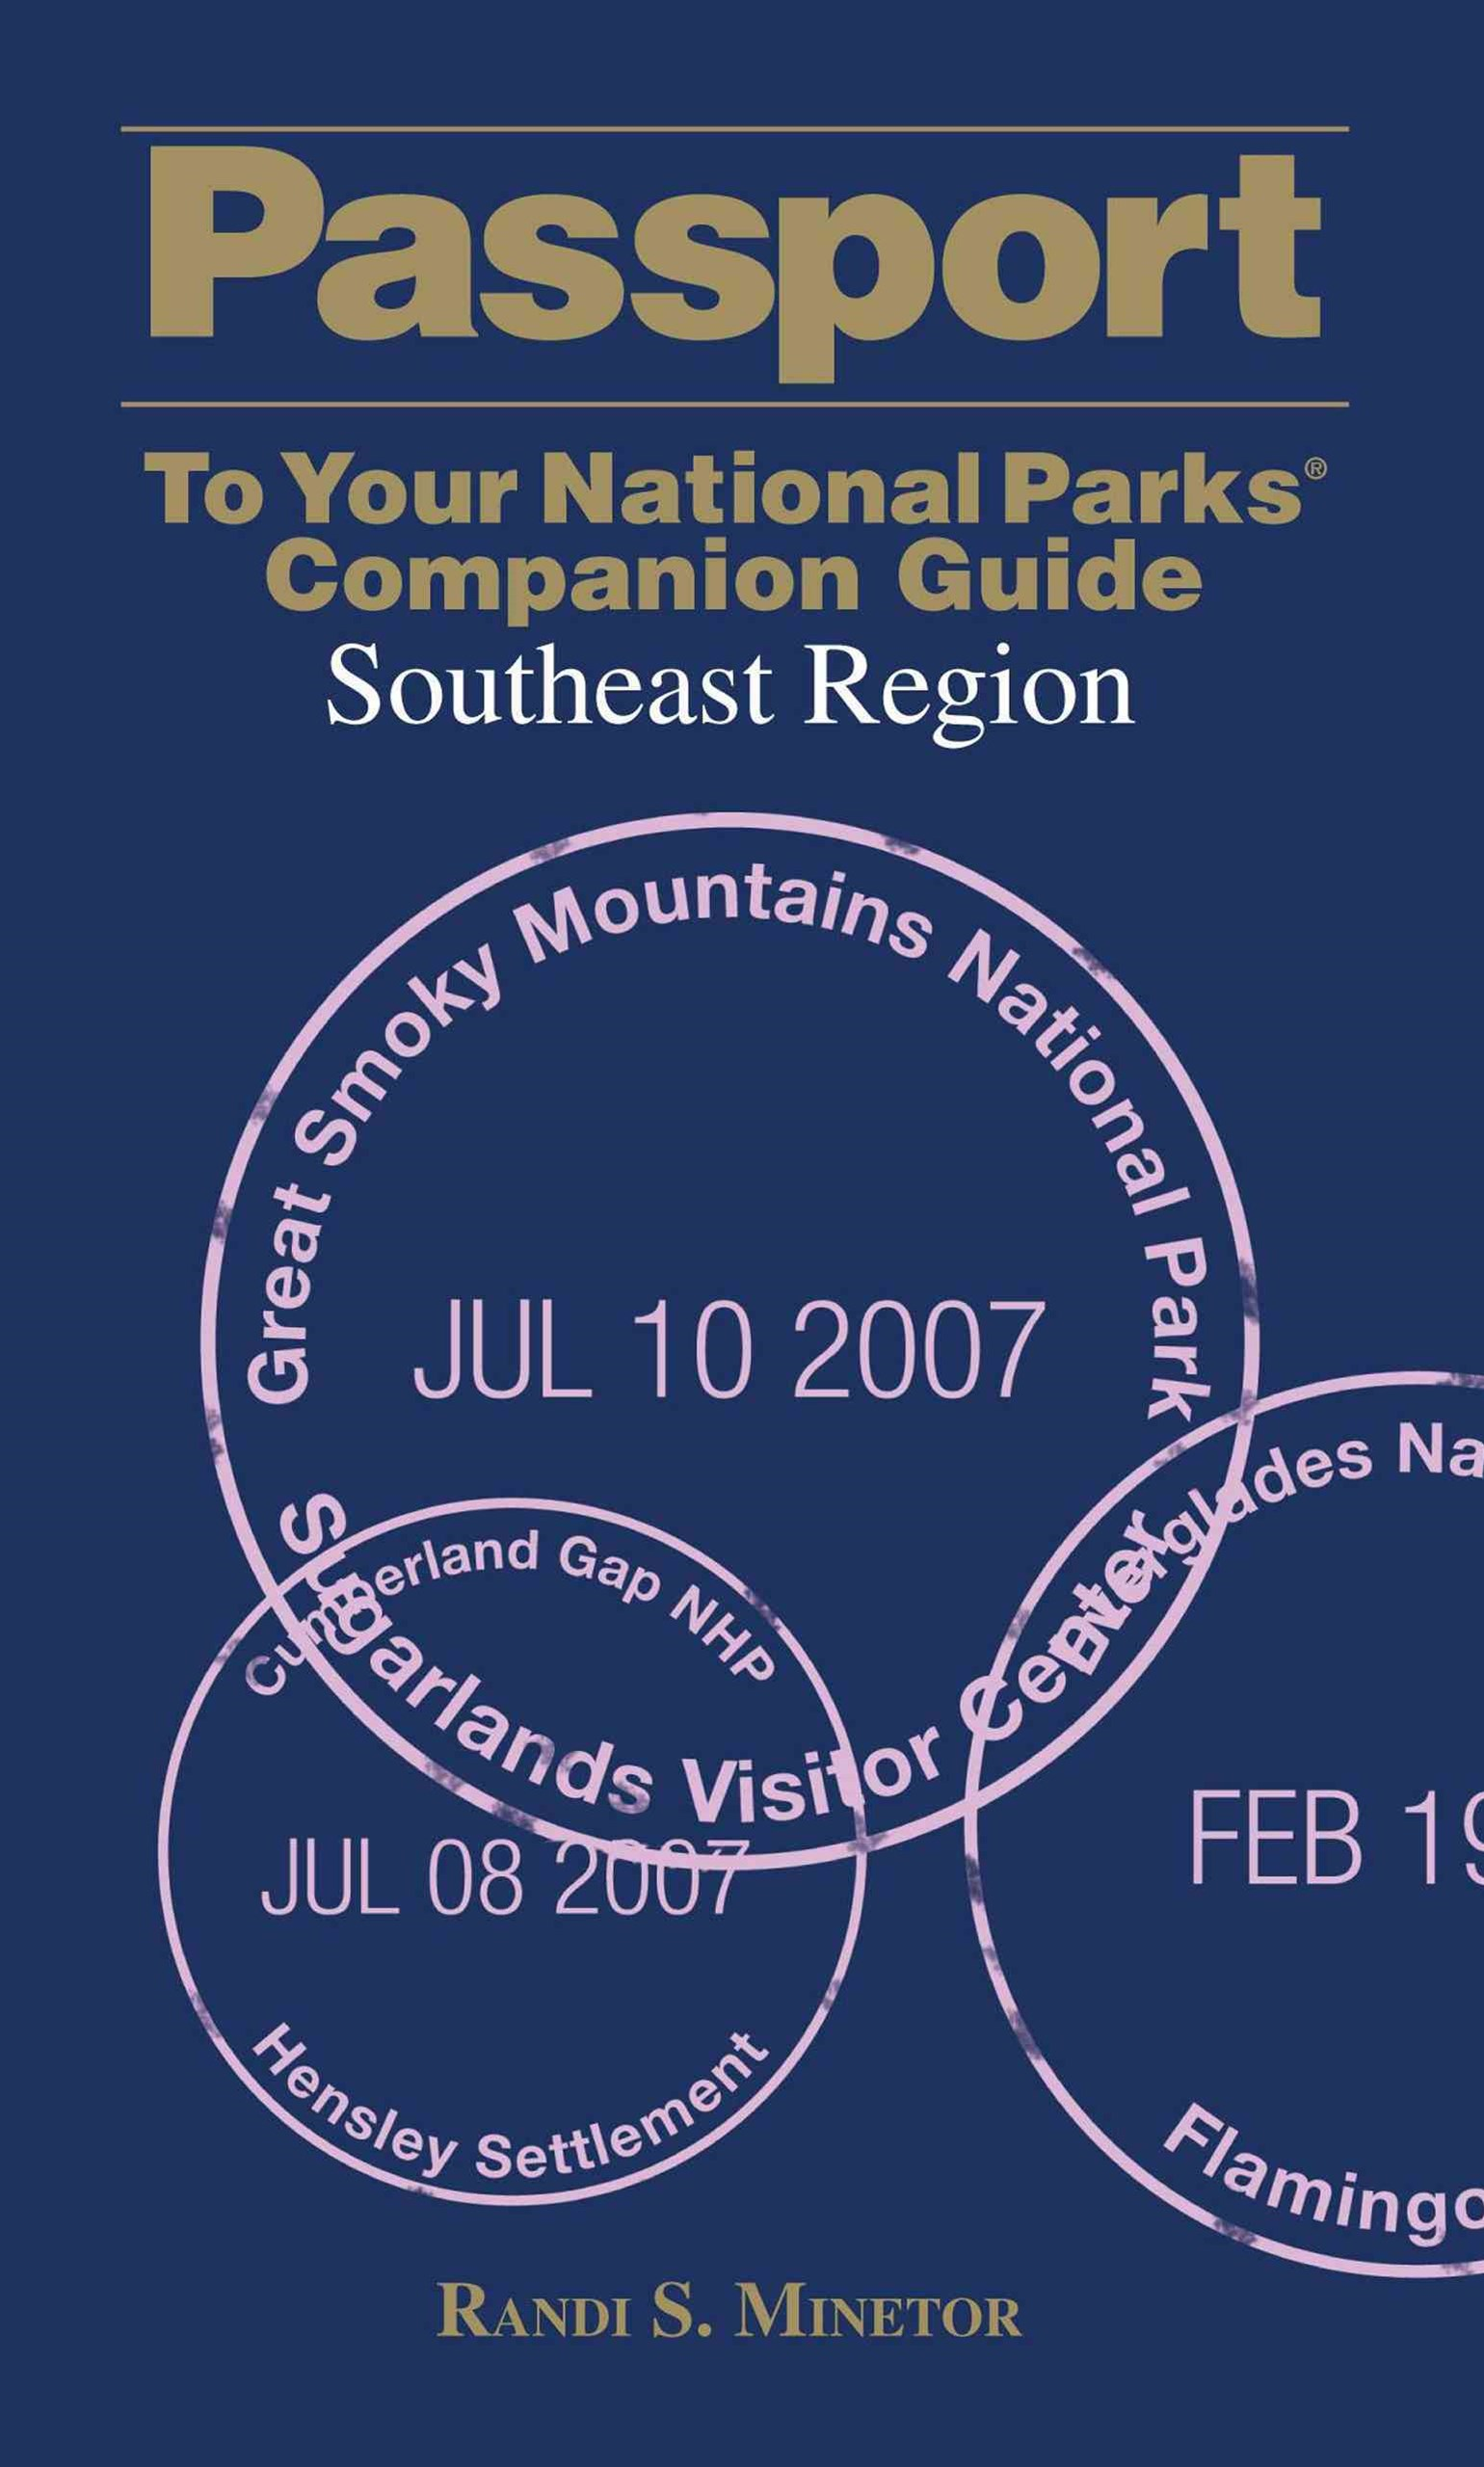 Passport to Your National Parks Companion Guide: Southeast Region